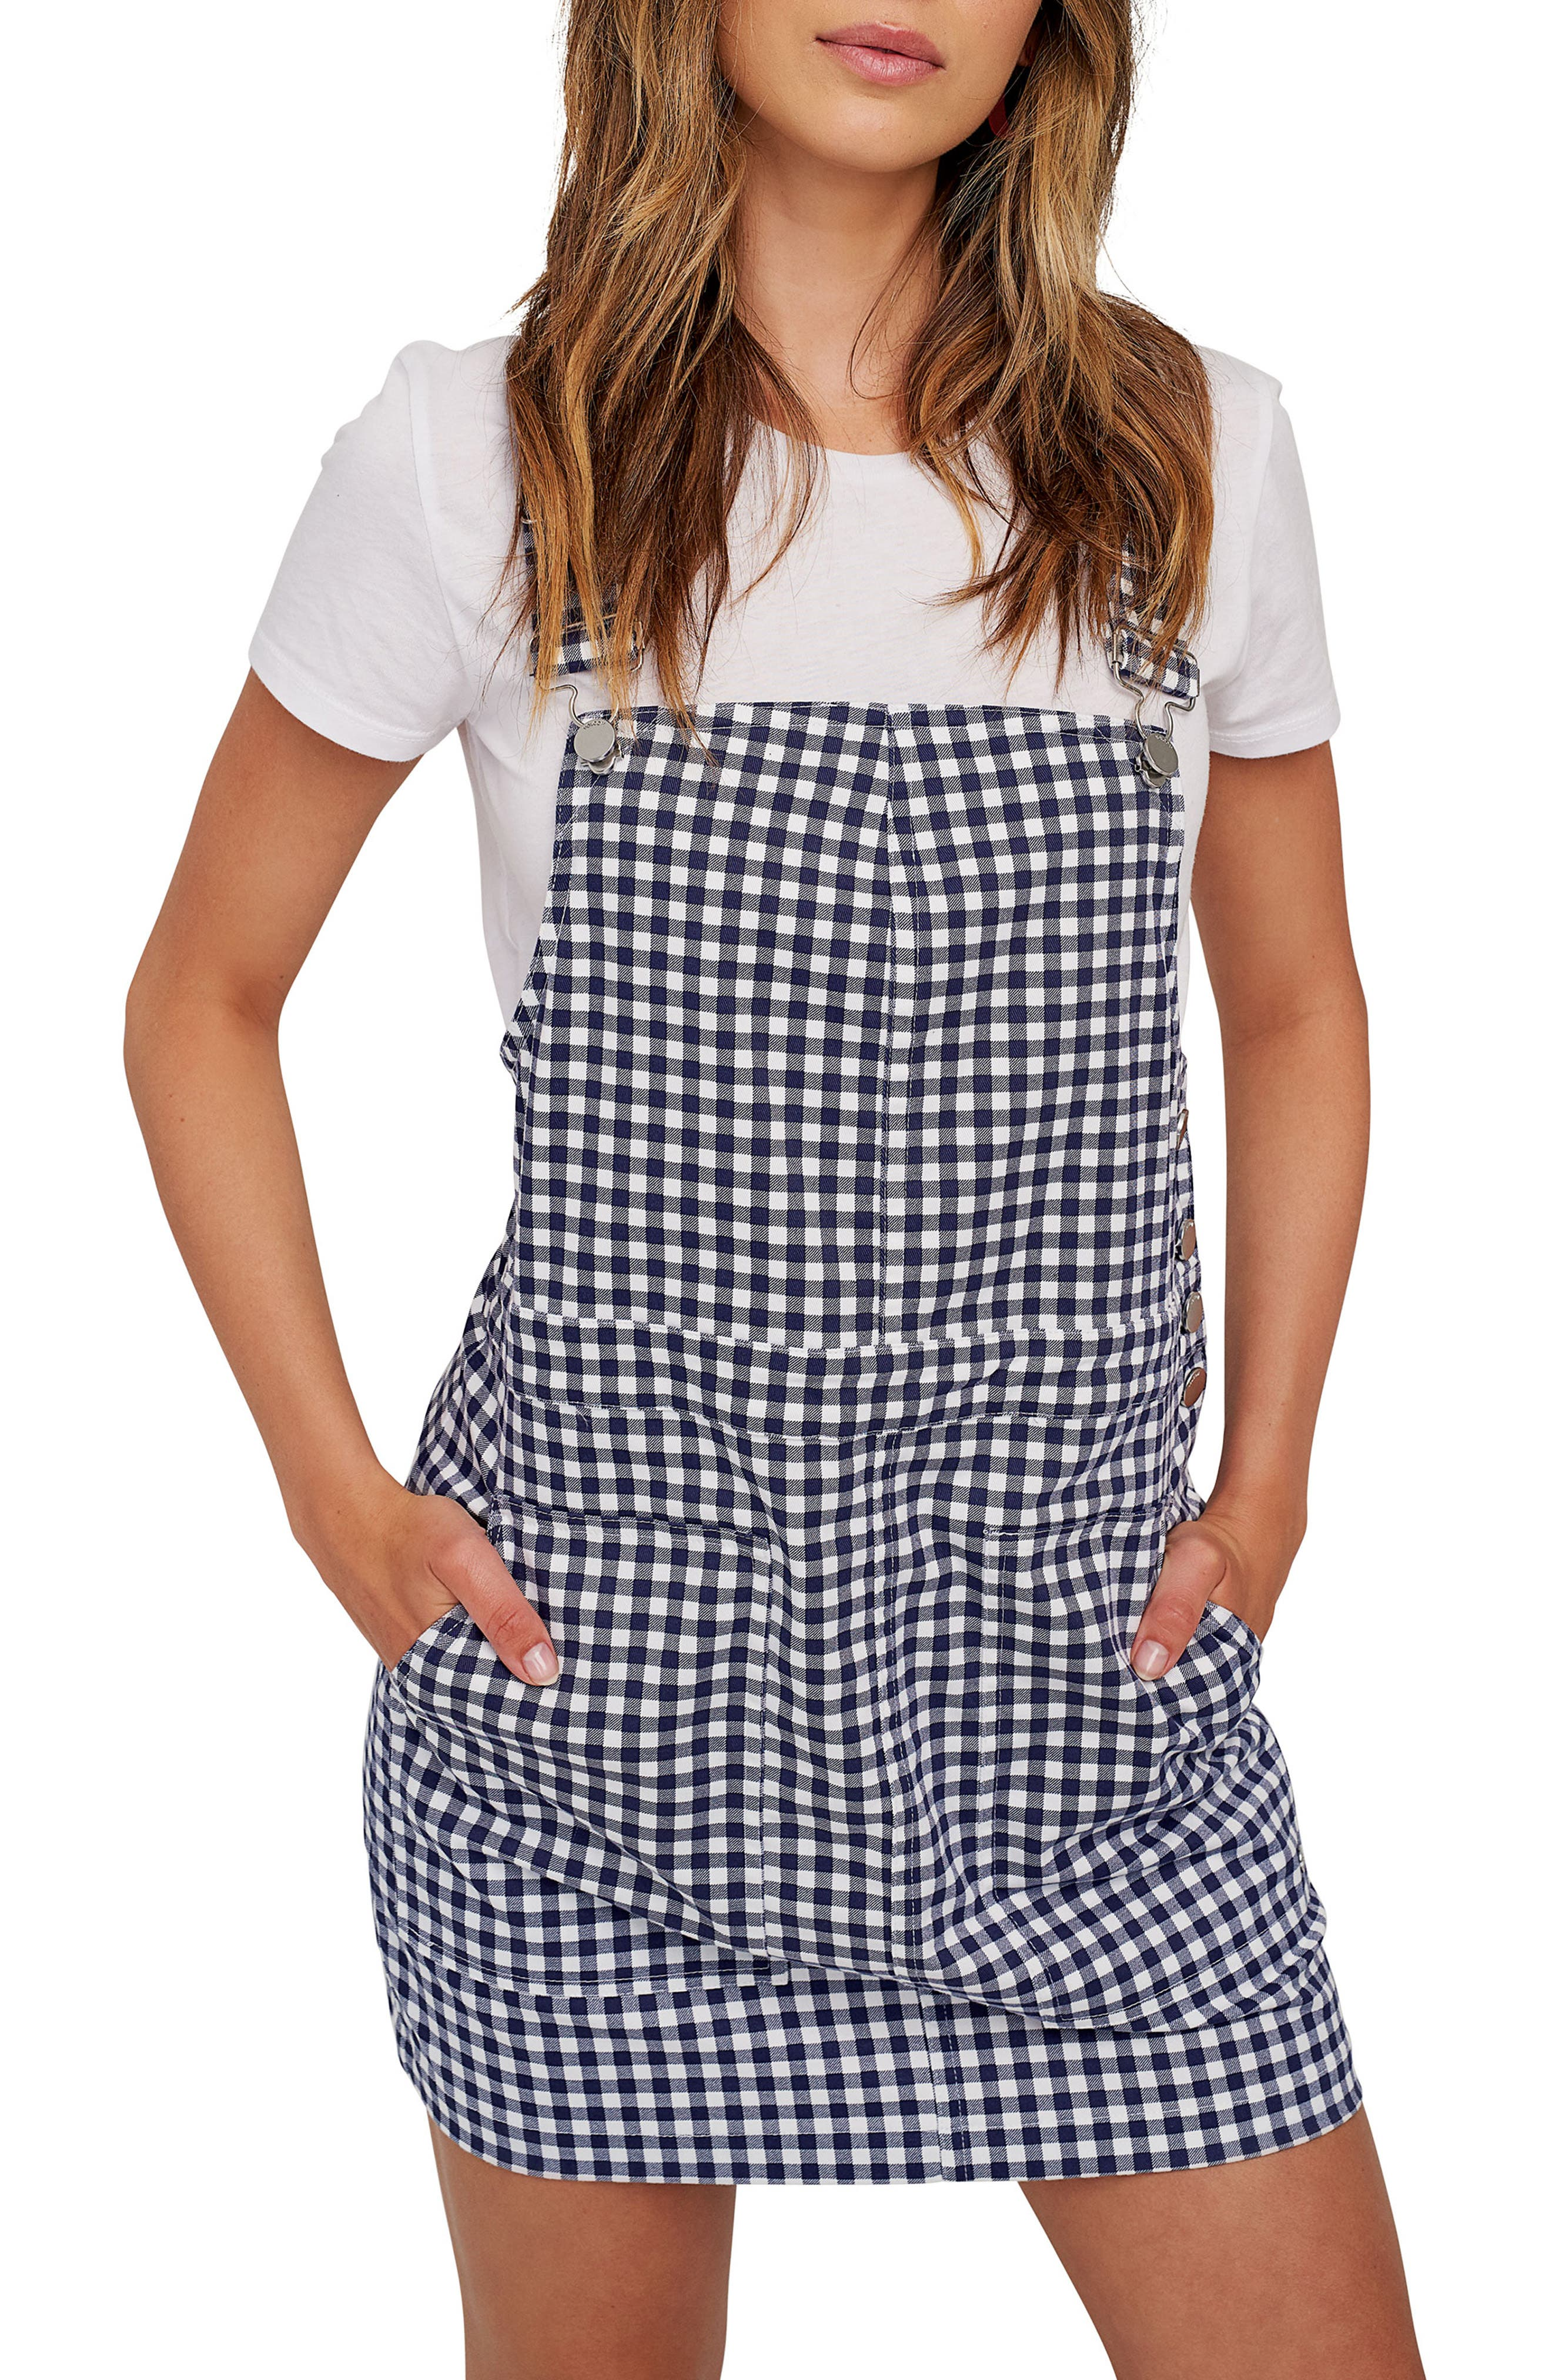 Volcom X Georgia May Jagger Frochickie Gingham Pinafore Dress, Blue